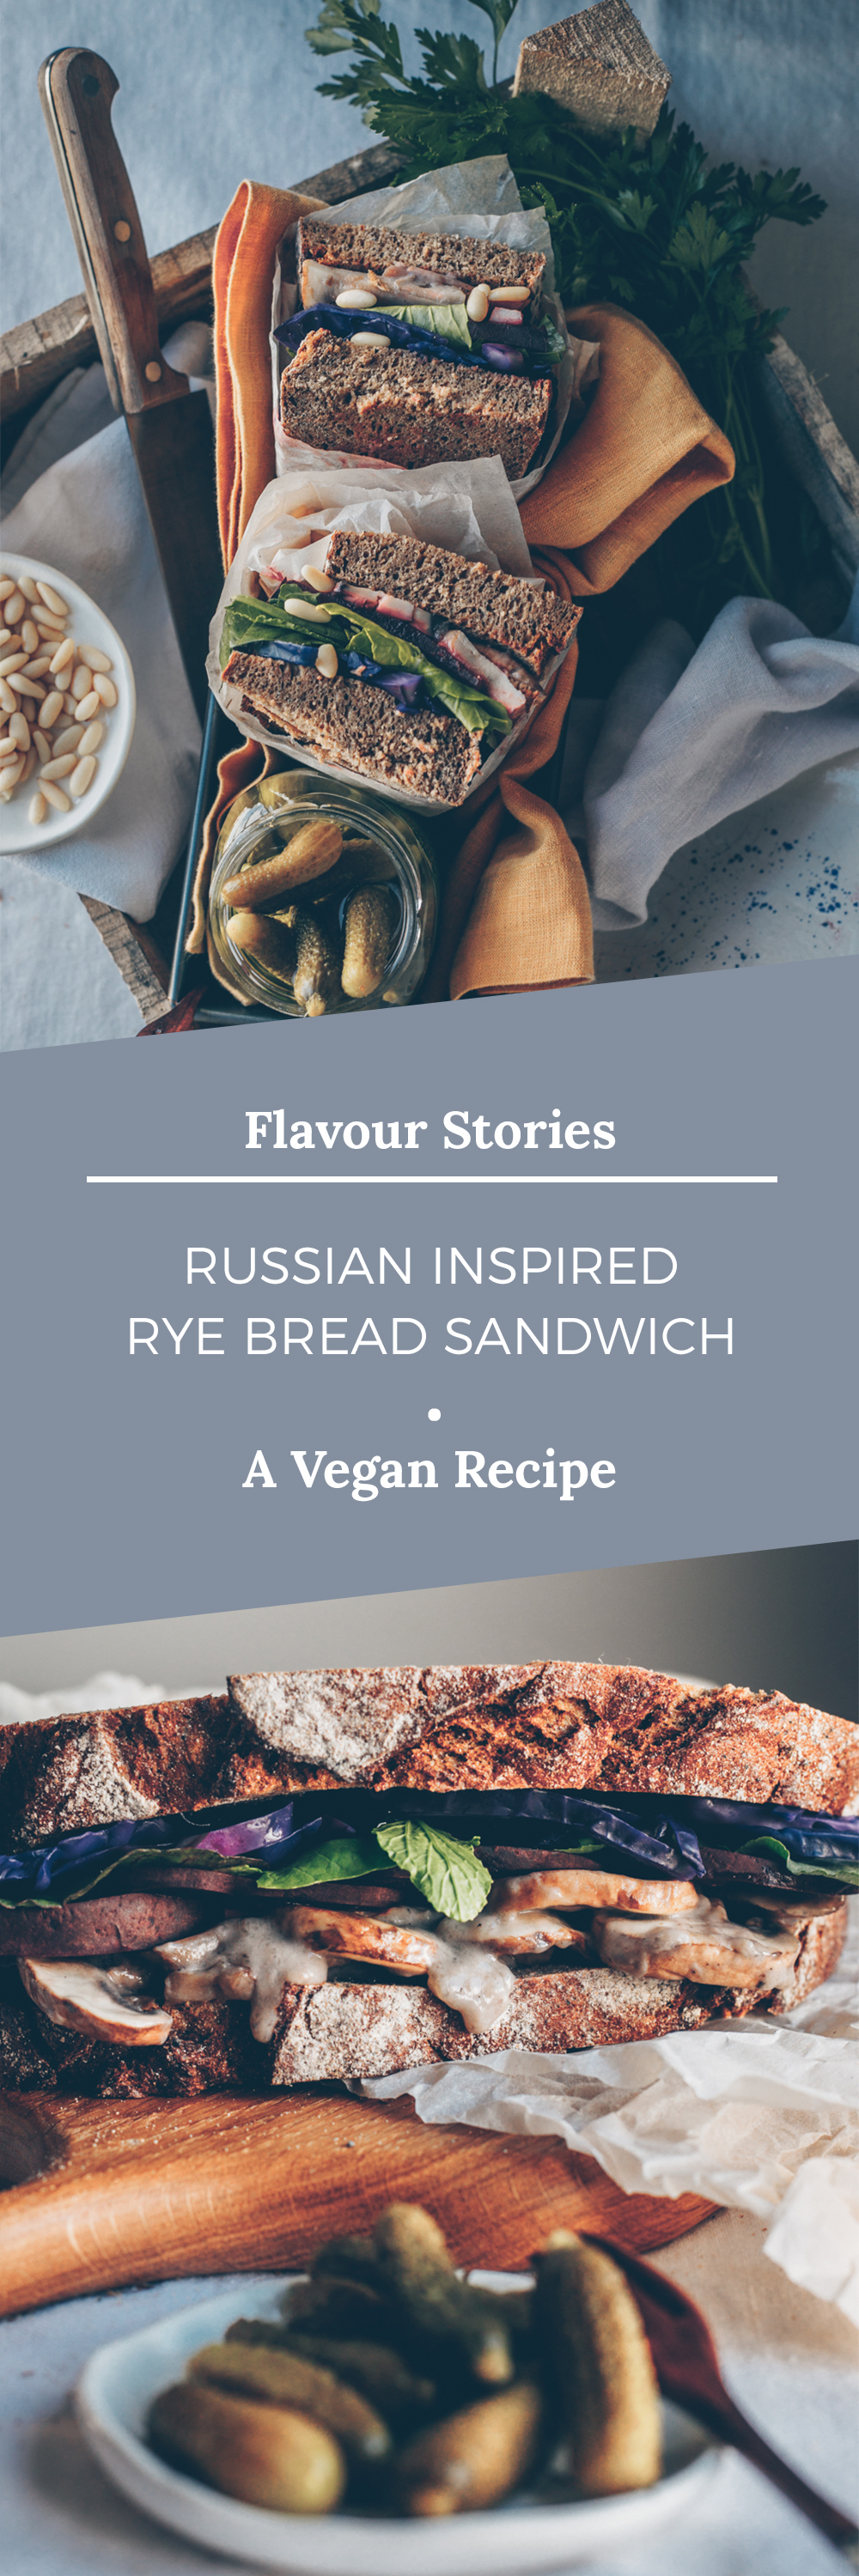 Russian Inspired Rye Bread Sandwich (Vegan Recipe) by Kati of black.white.vivid.